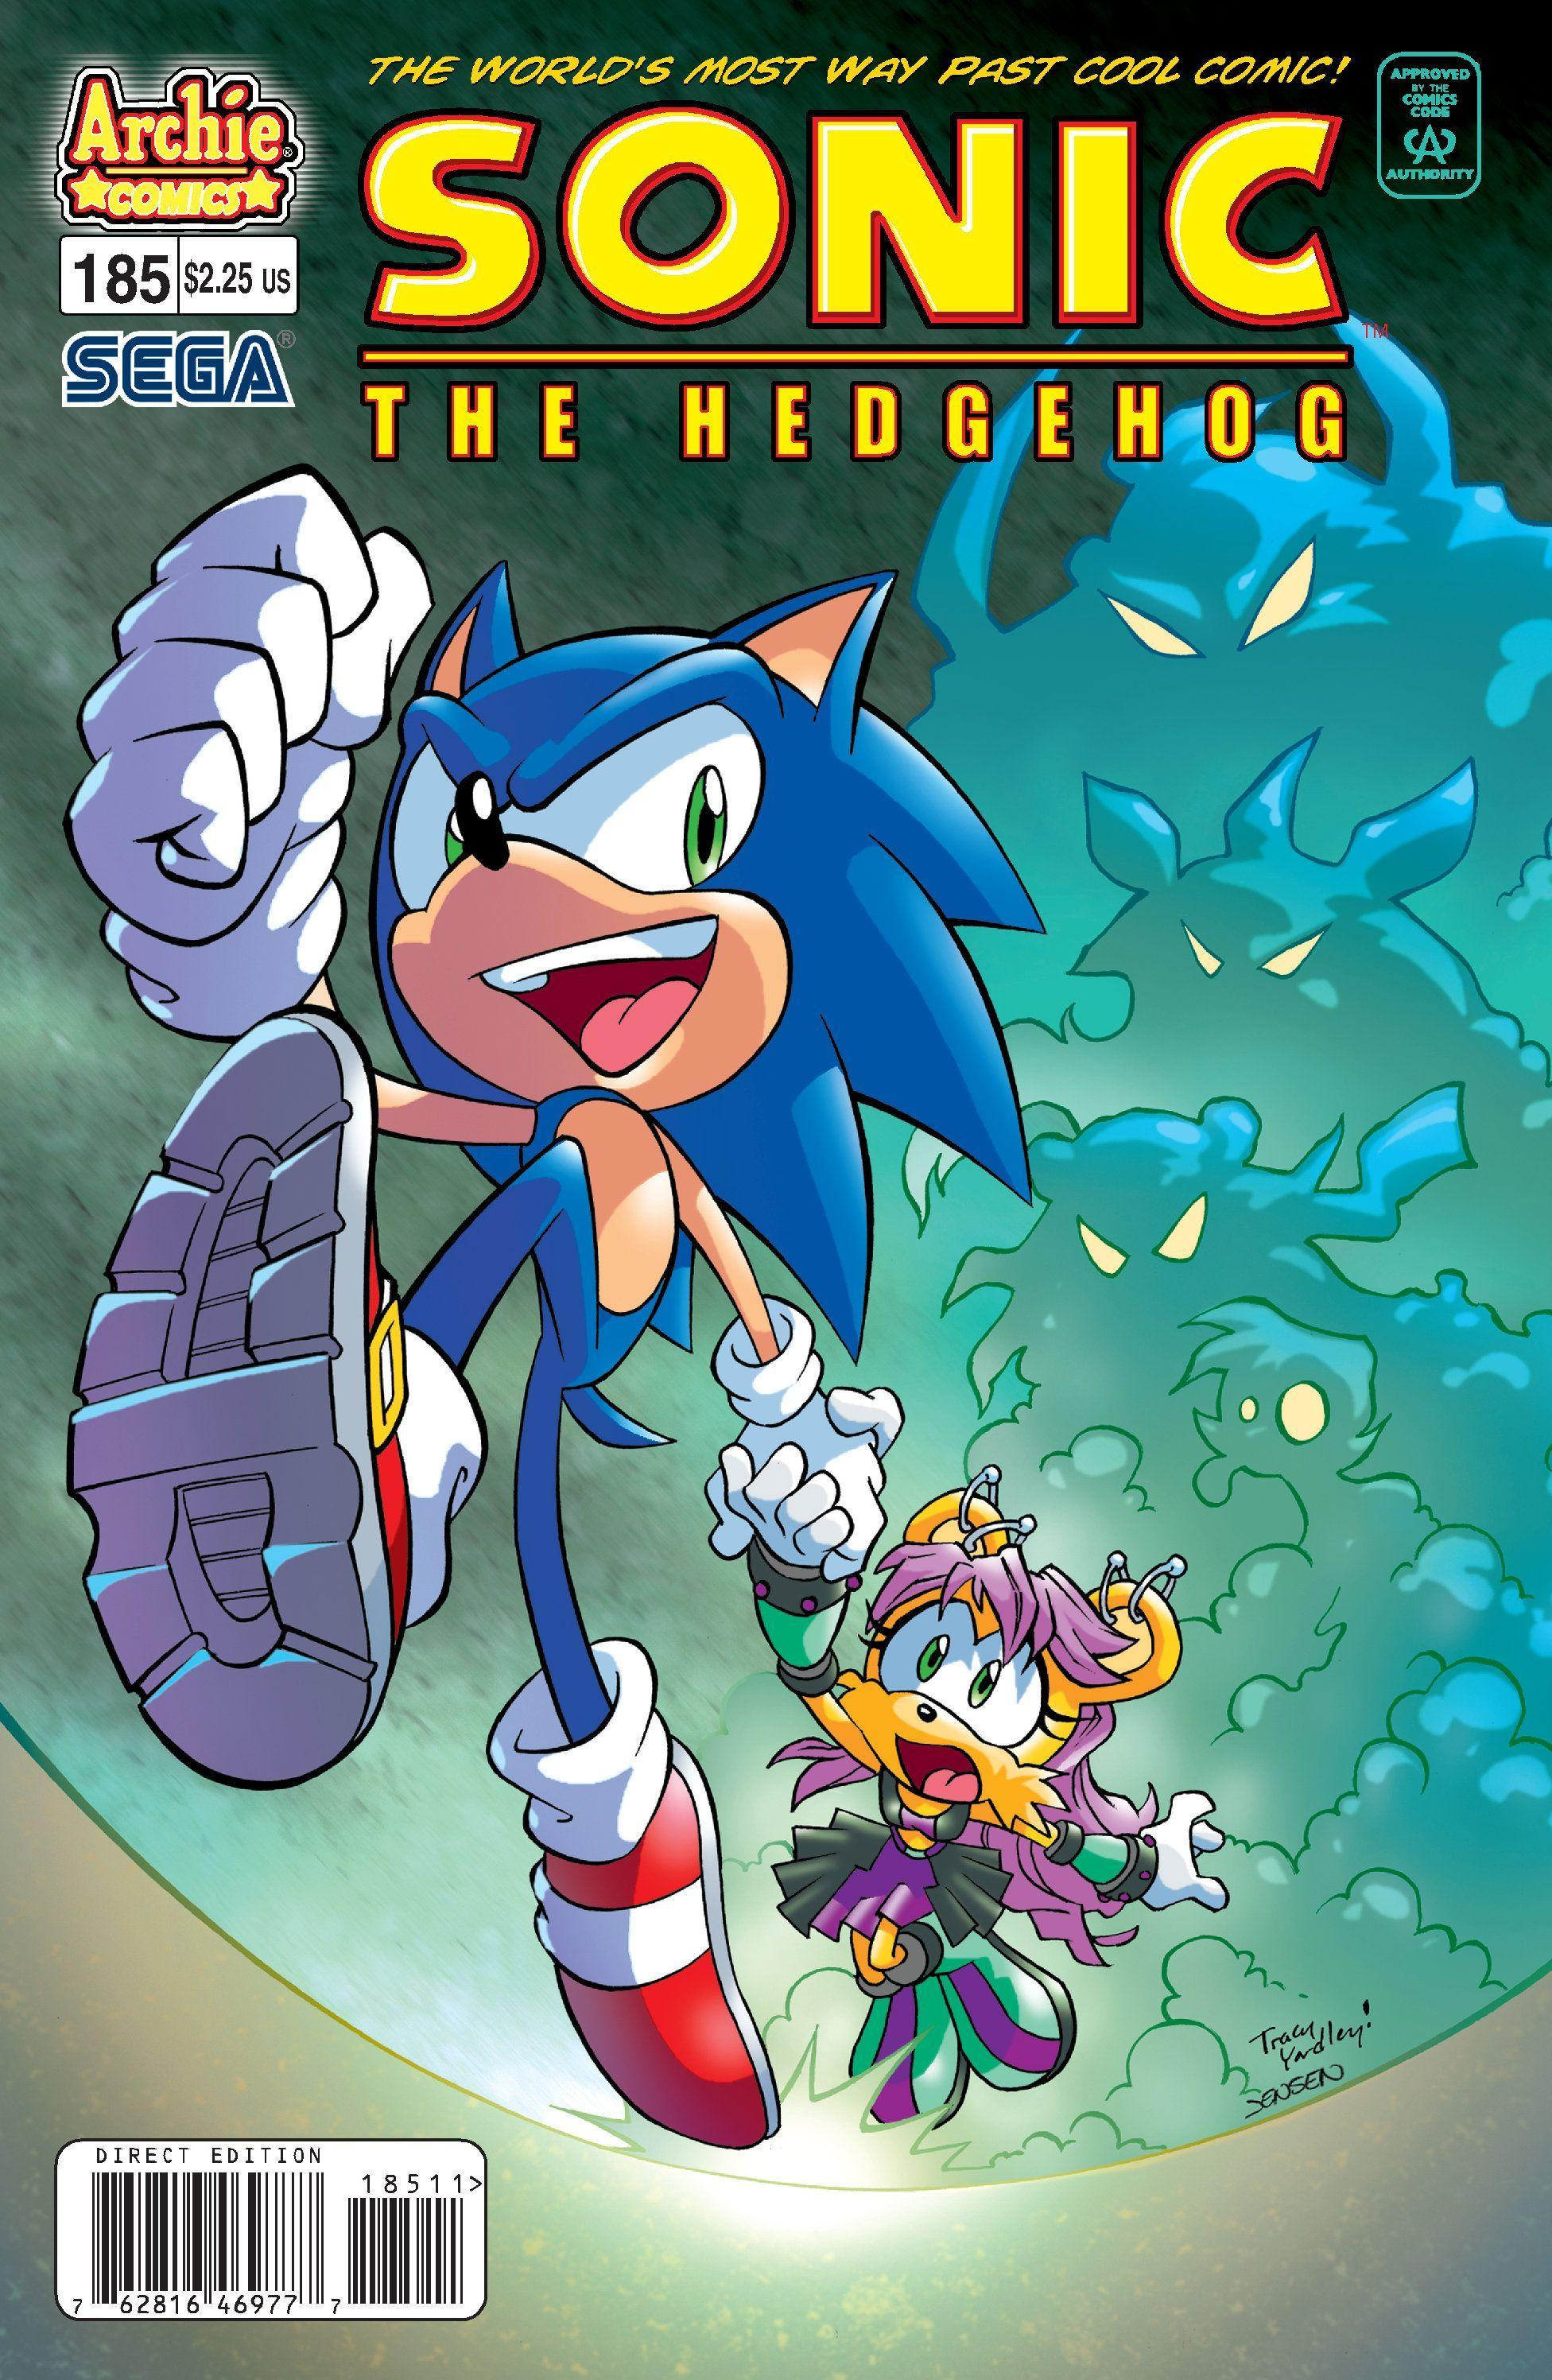 Archie Sonic the Hedgehog Issue 185